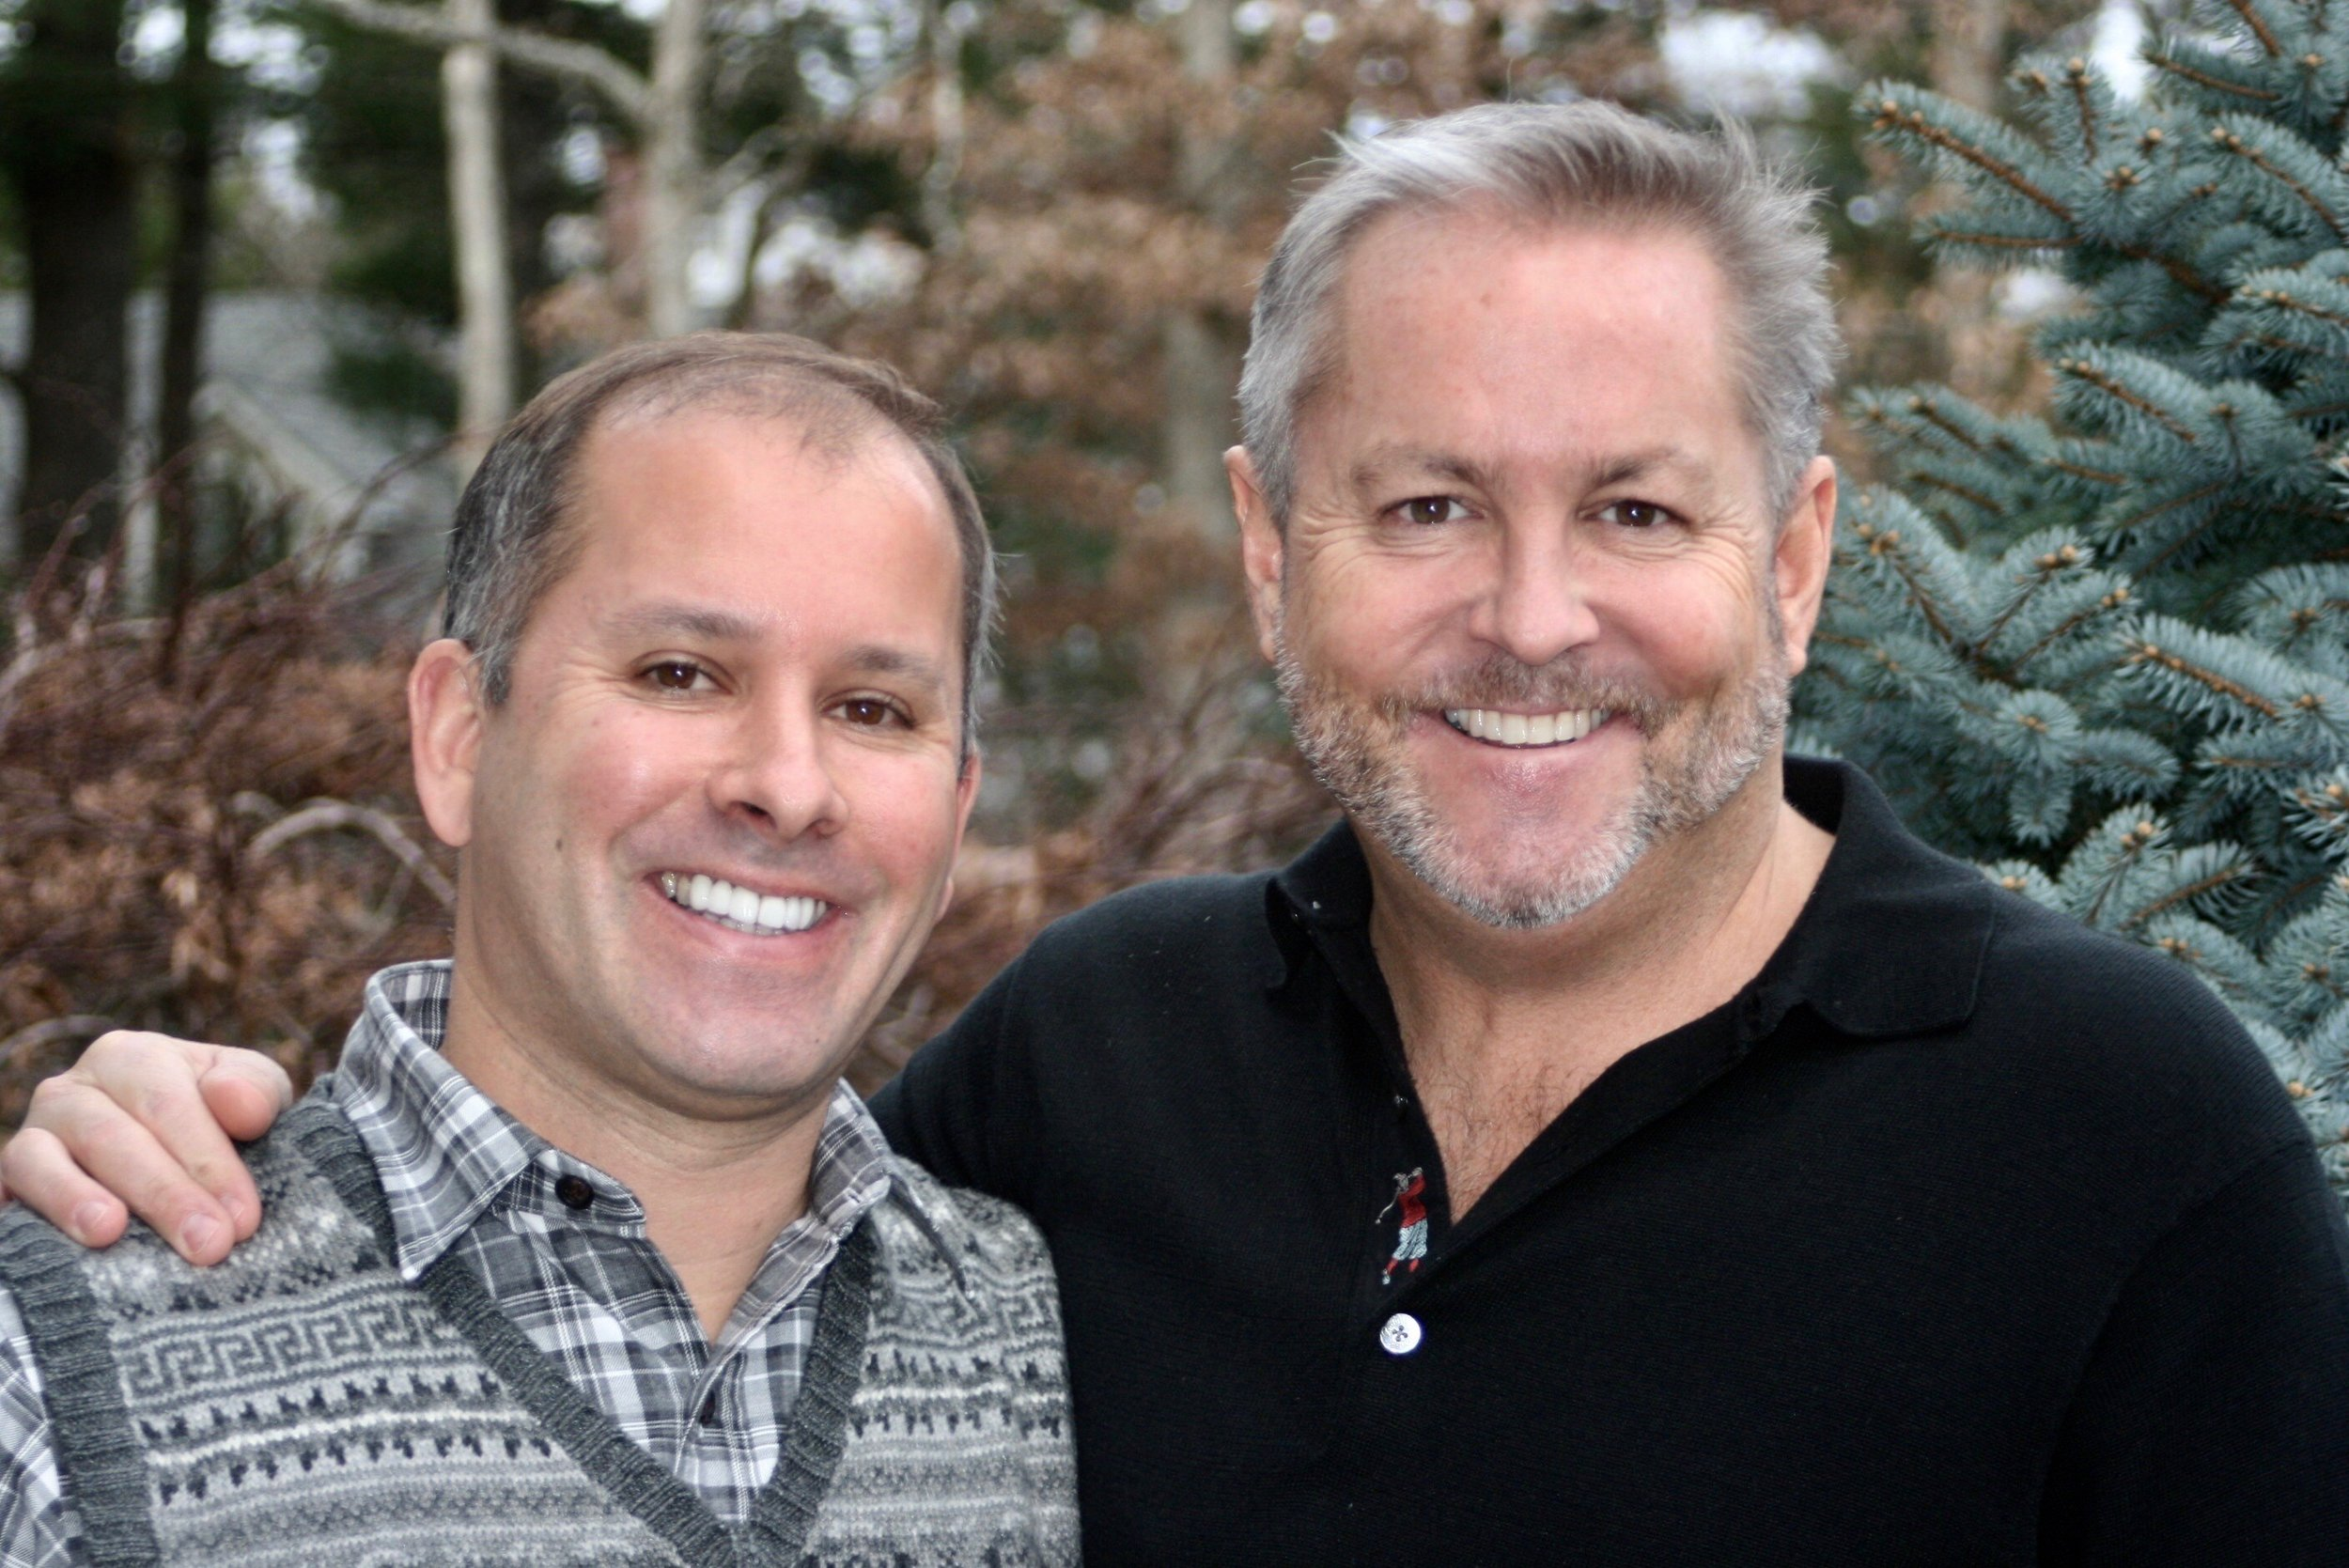 Dan MacDonald and Gregg Kaminsky - Producer and Founding Partner R Family Vacations